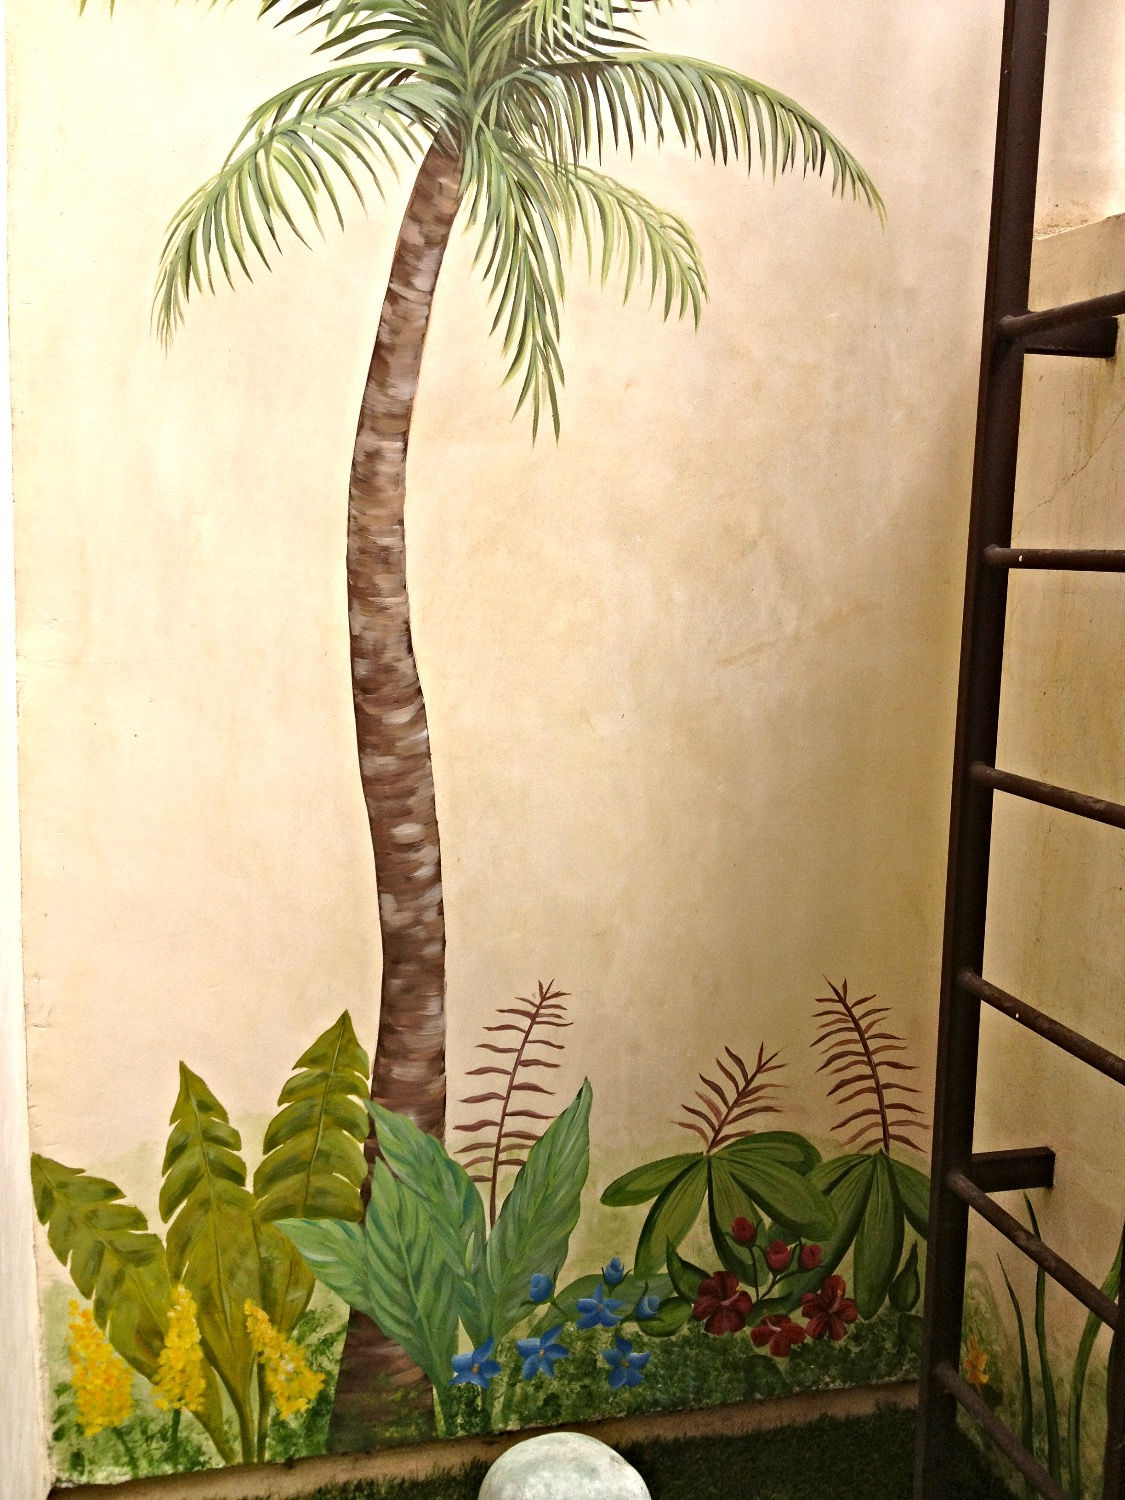 Palm tree and foliage